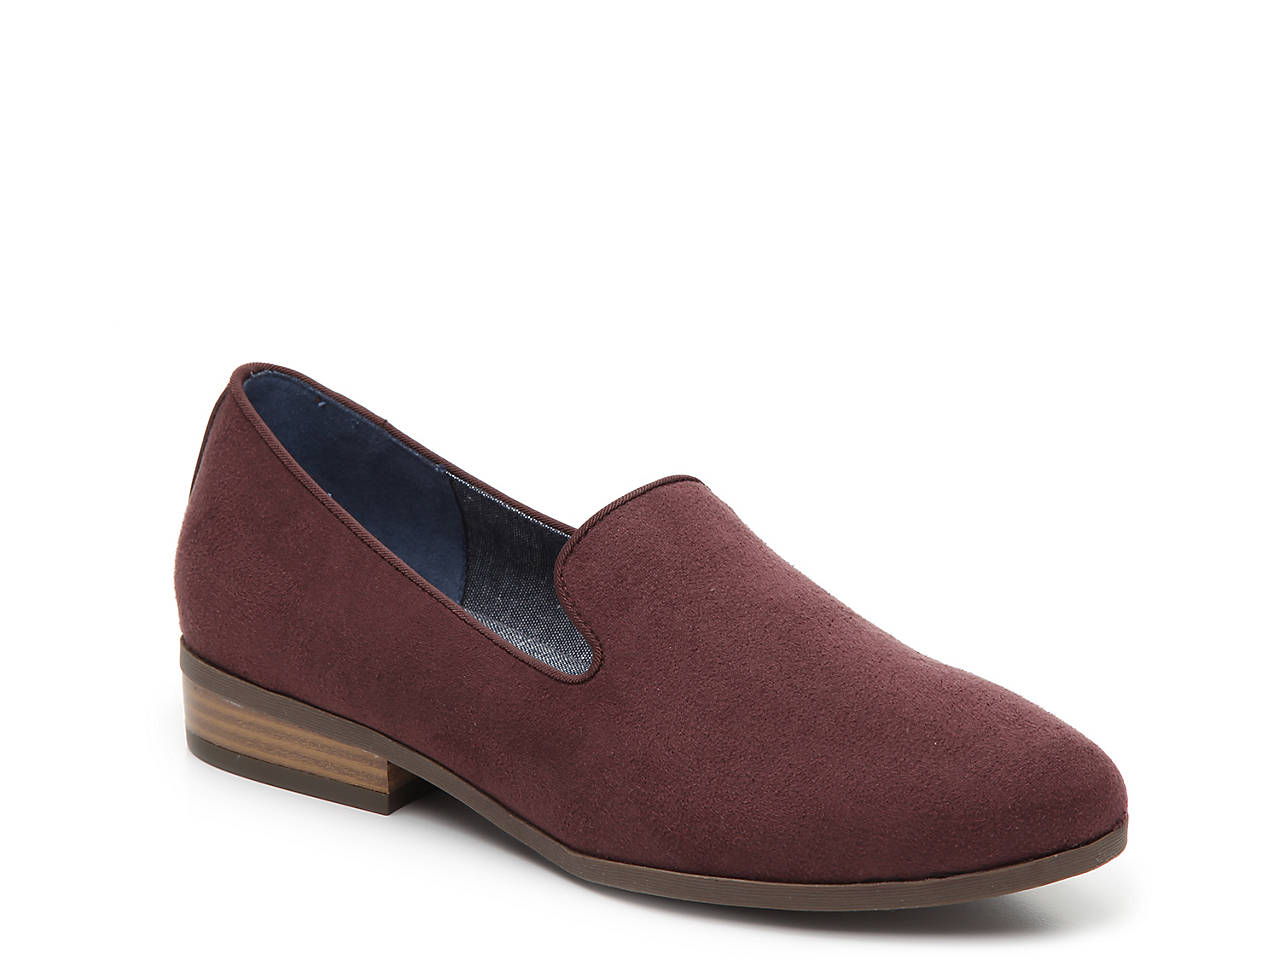 62577061 Dr. Scholl's Emperor Loafer Women's Shoes | DSW